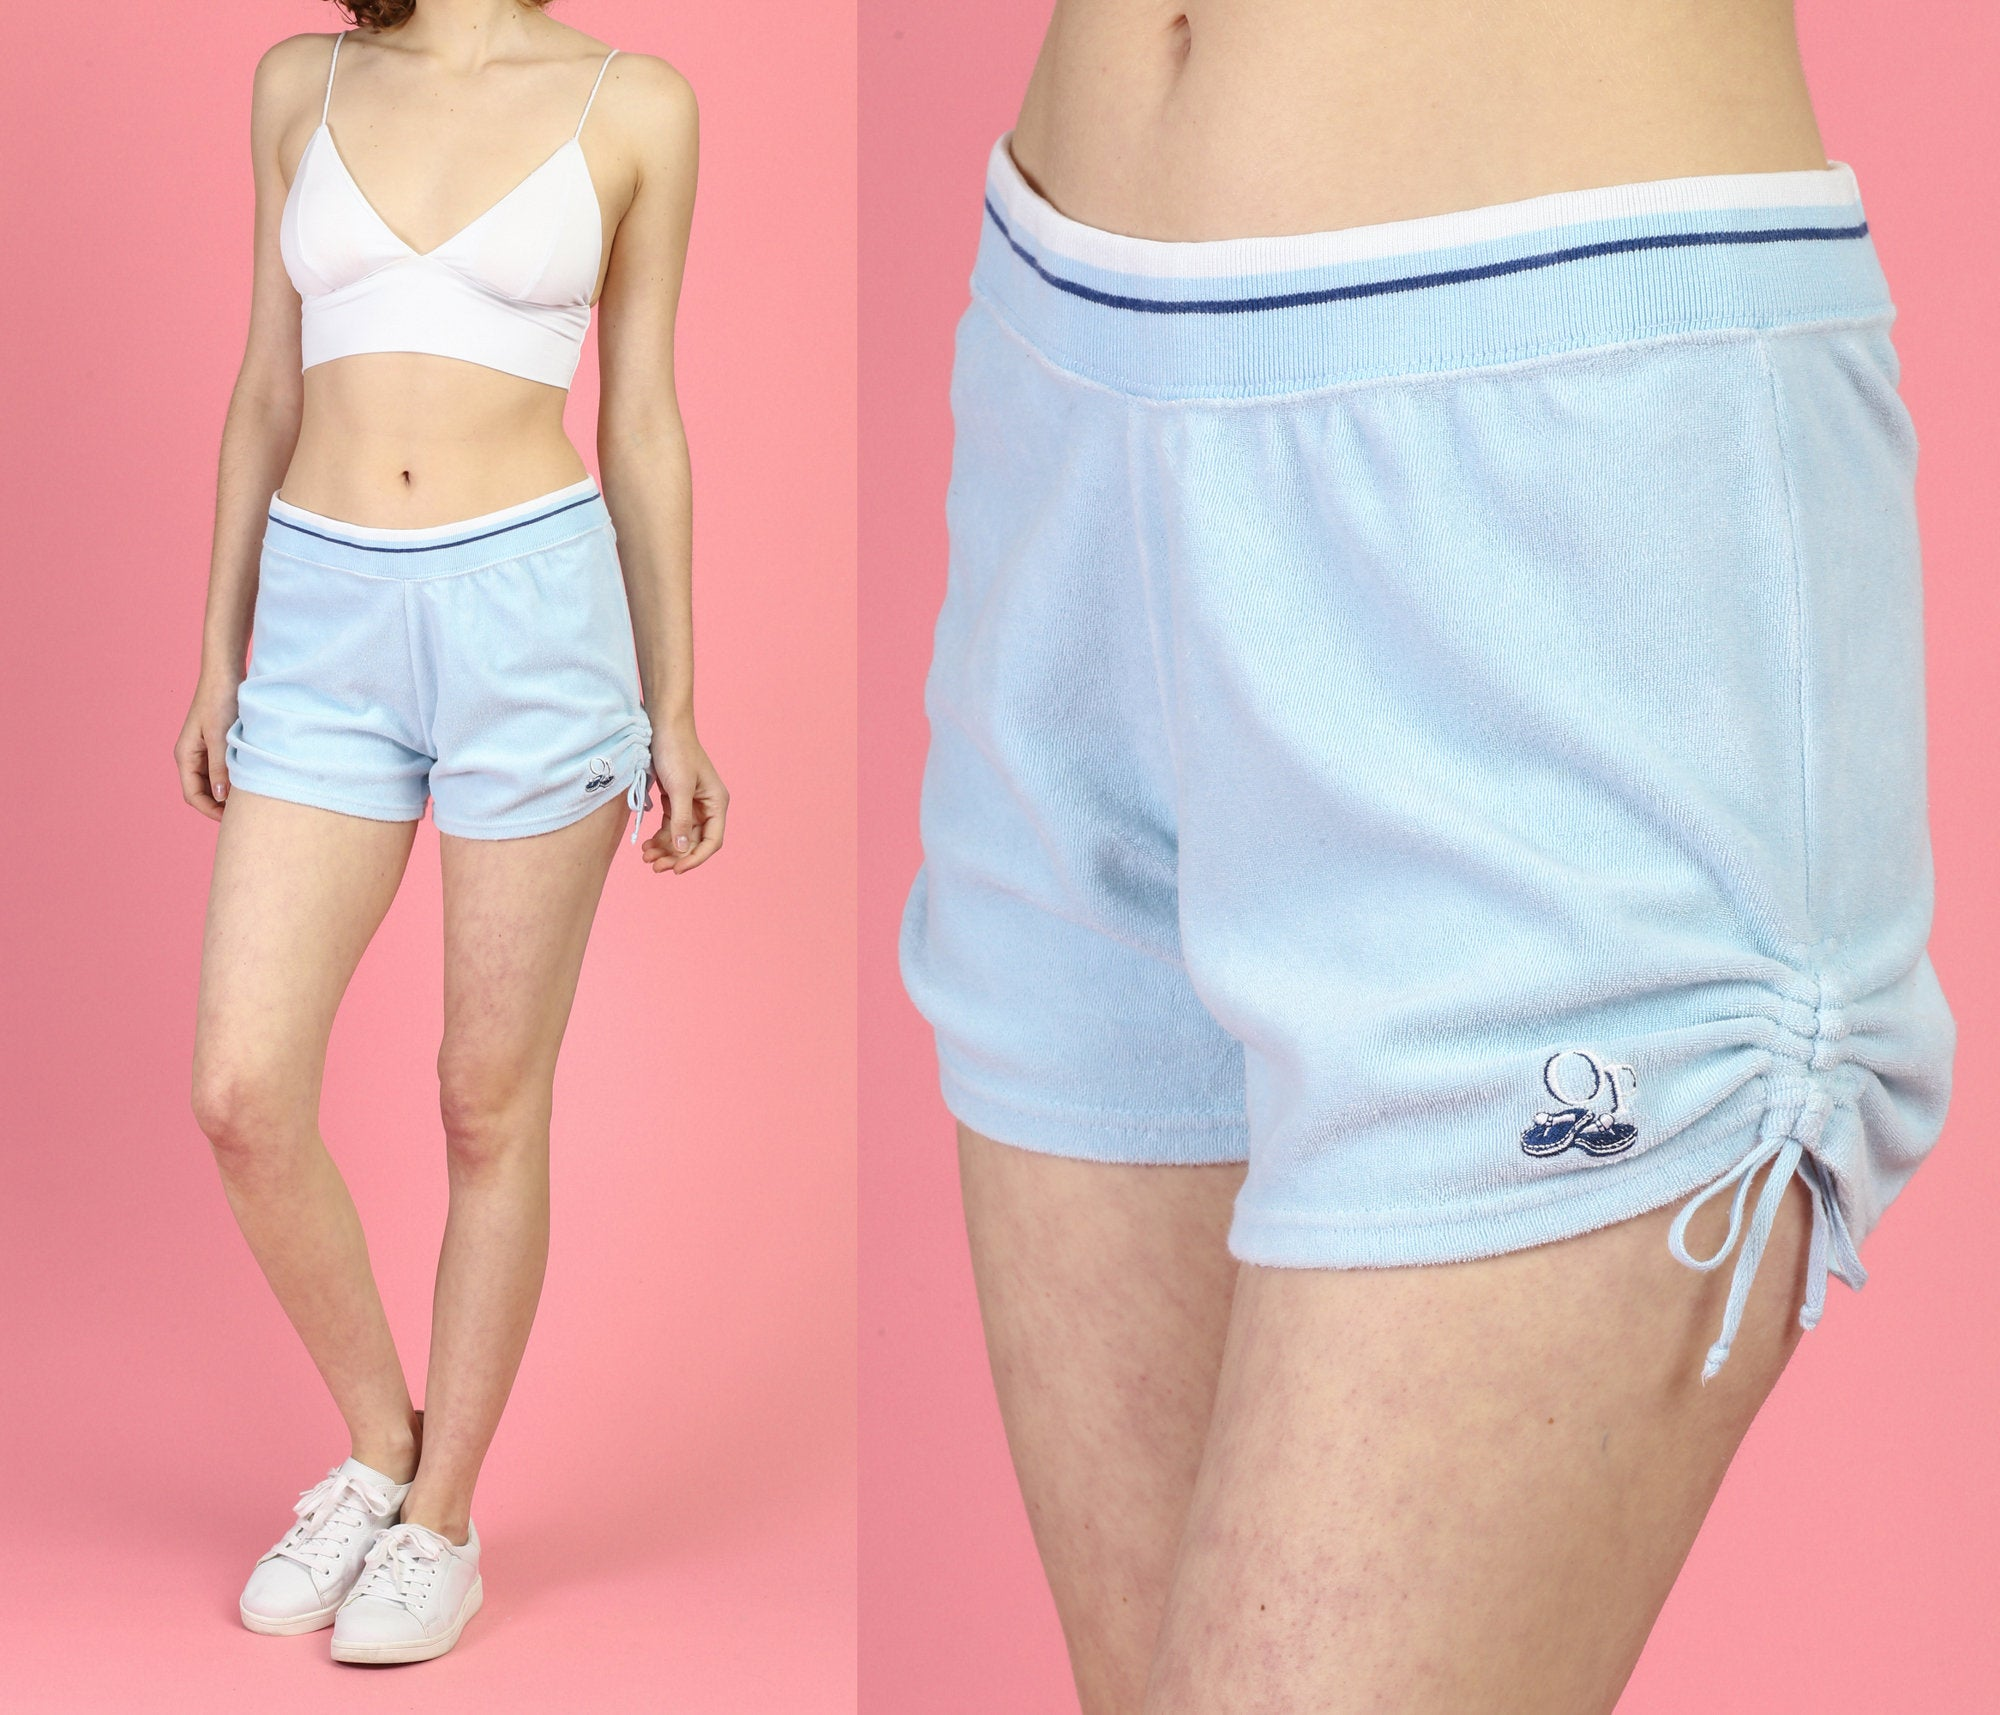 90s Ocean Pacific Terrycloth Shorts - Medium